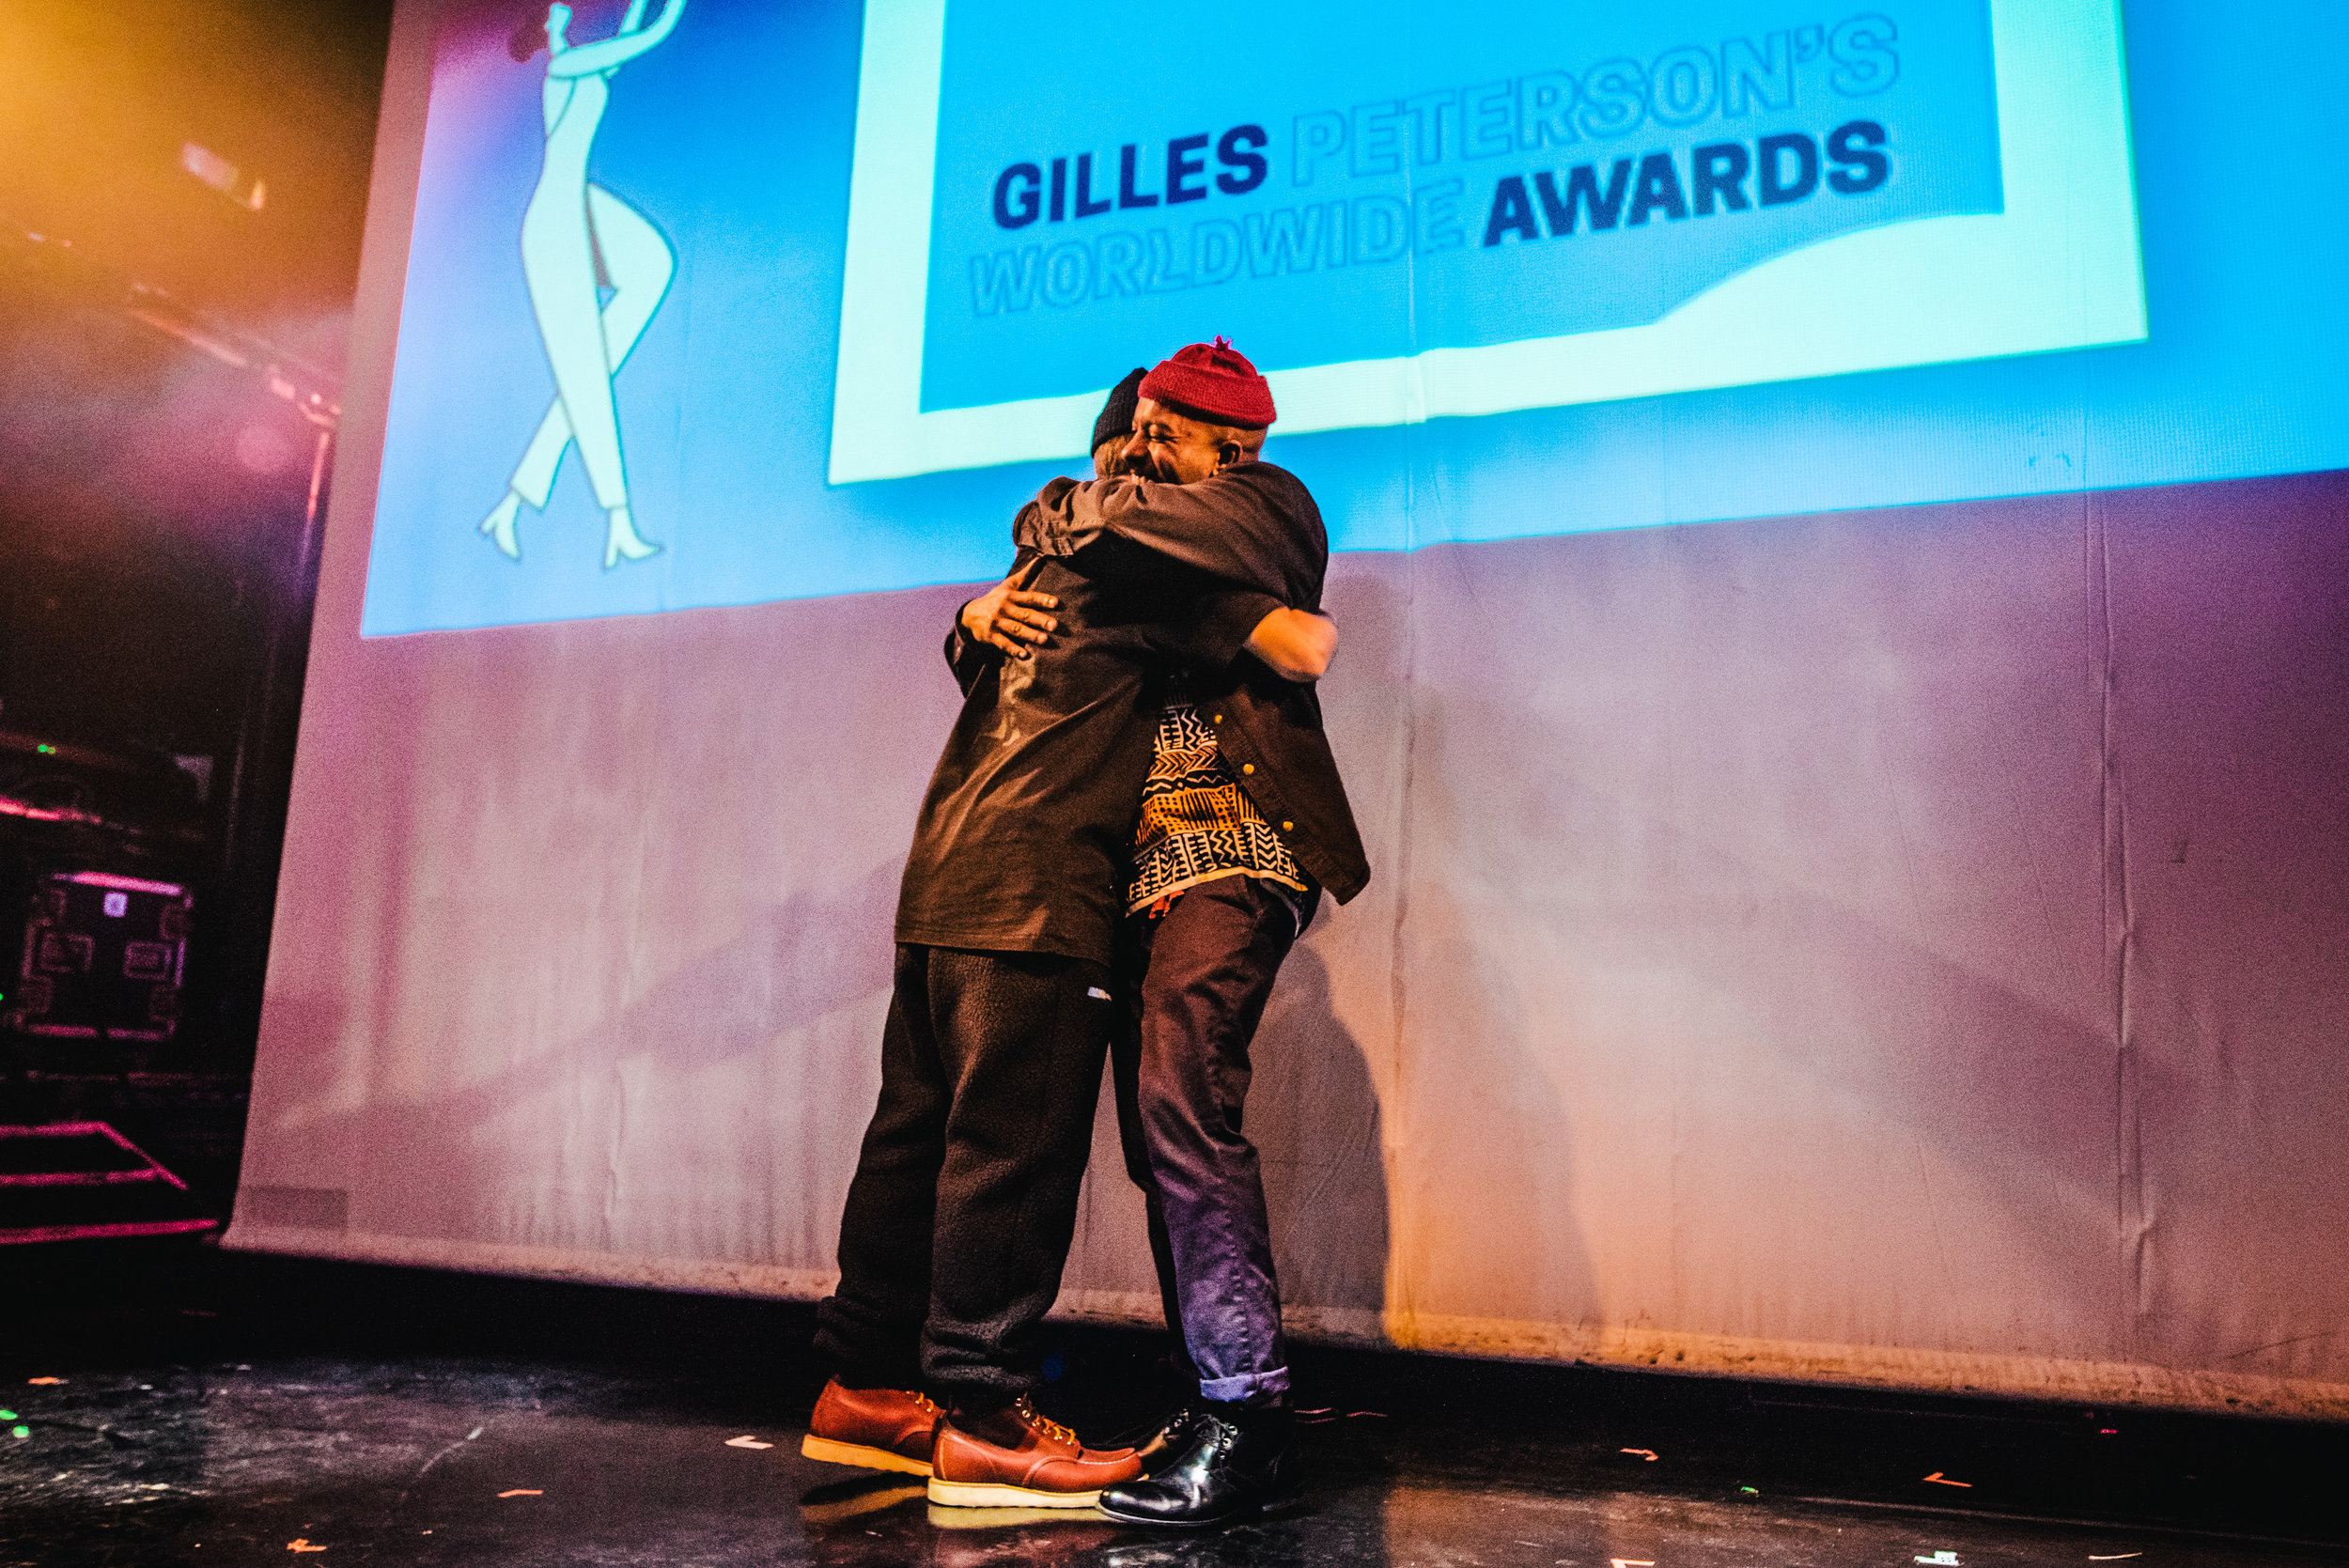 Copy of Gilles_Peterson_Worldwide_Awards_2019_January_2019_Rob_Jones_@hirobjones_ROB_3869.jpg